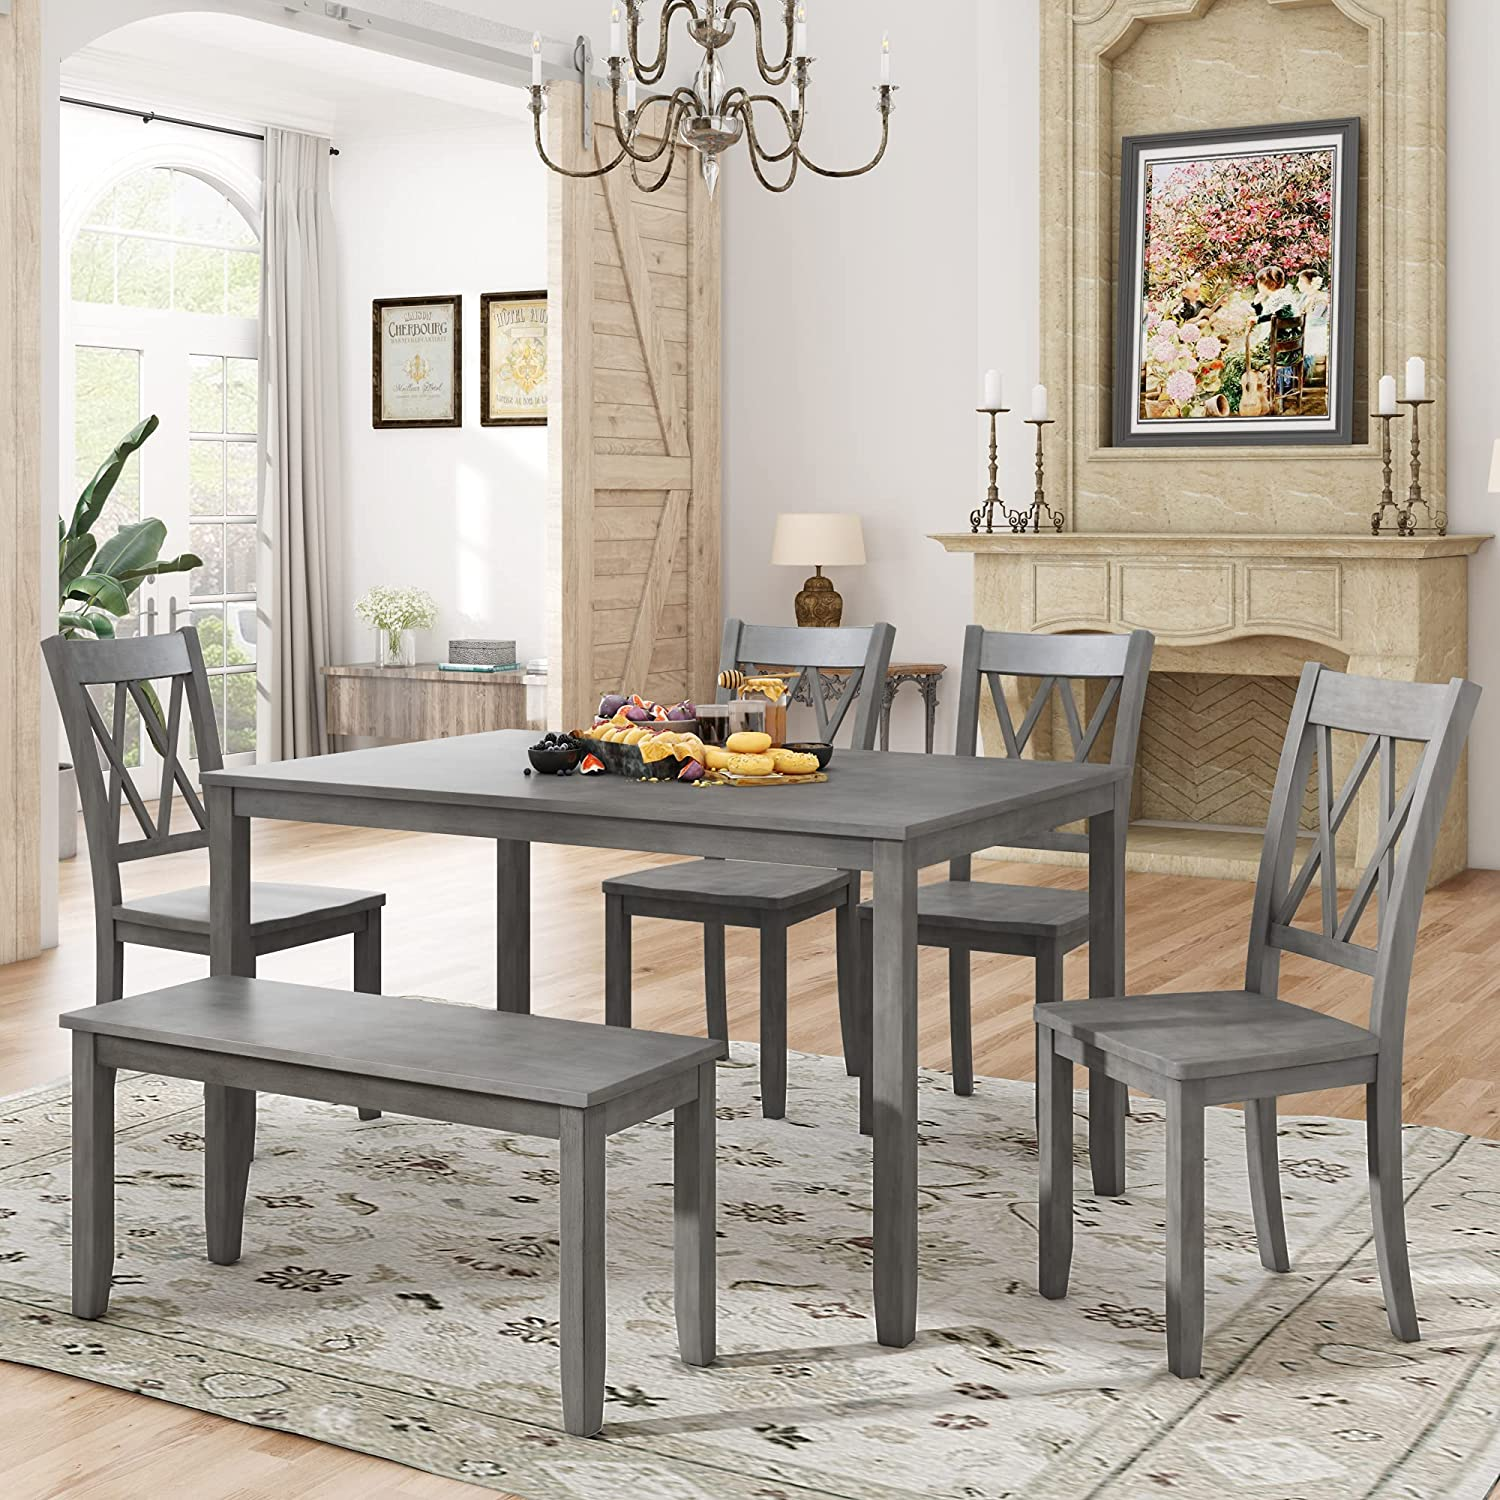 Merax Dining Today's only Popular products Table Sets 6-Piece Wood Kitchen